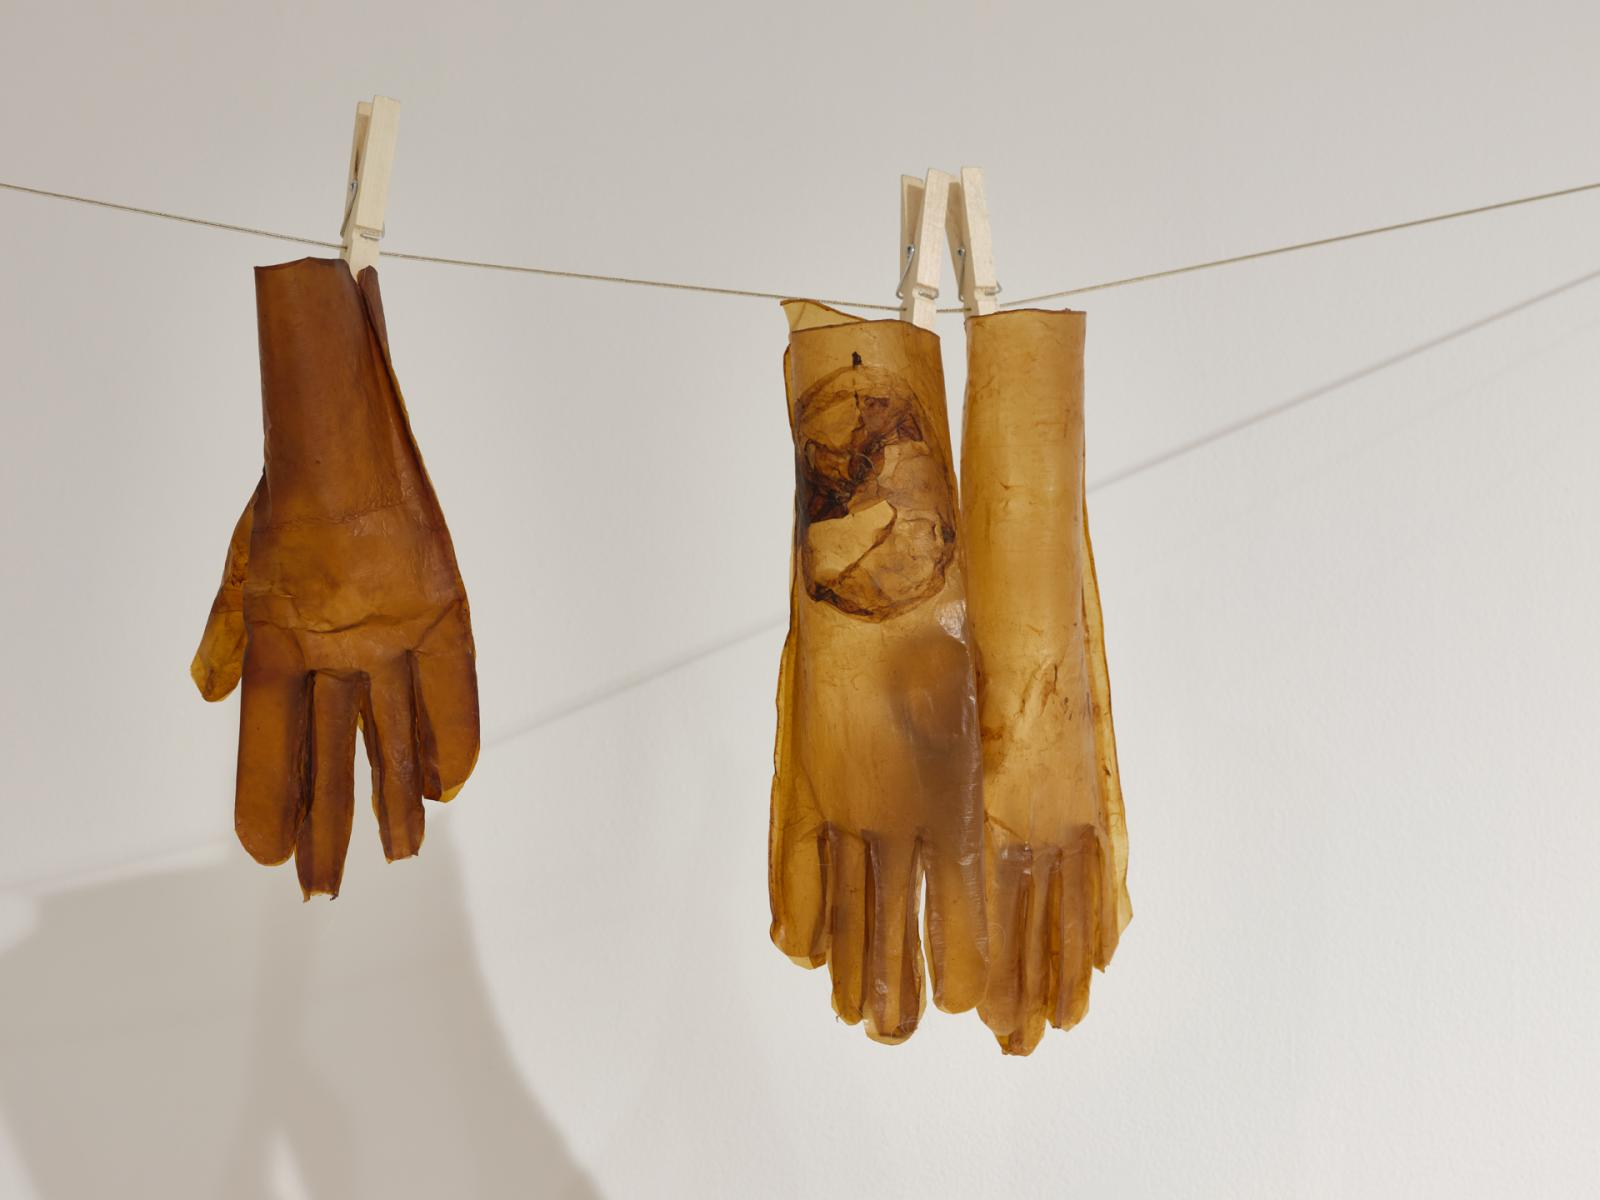 gloves made of cellulose hanging on a laundry-line